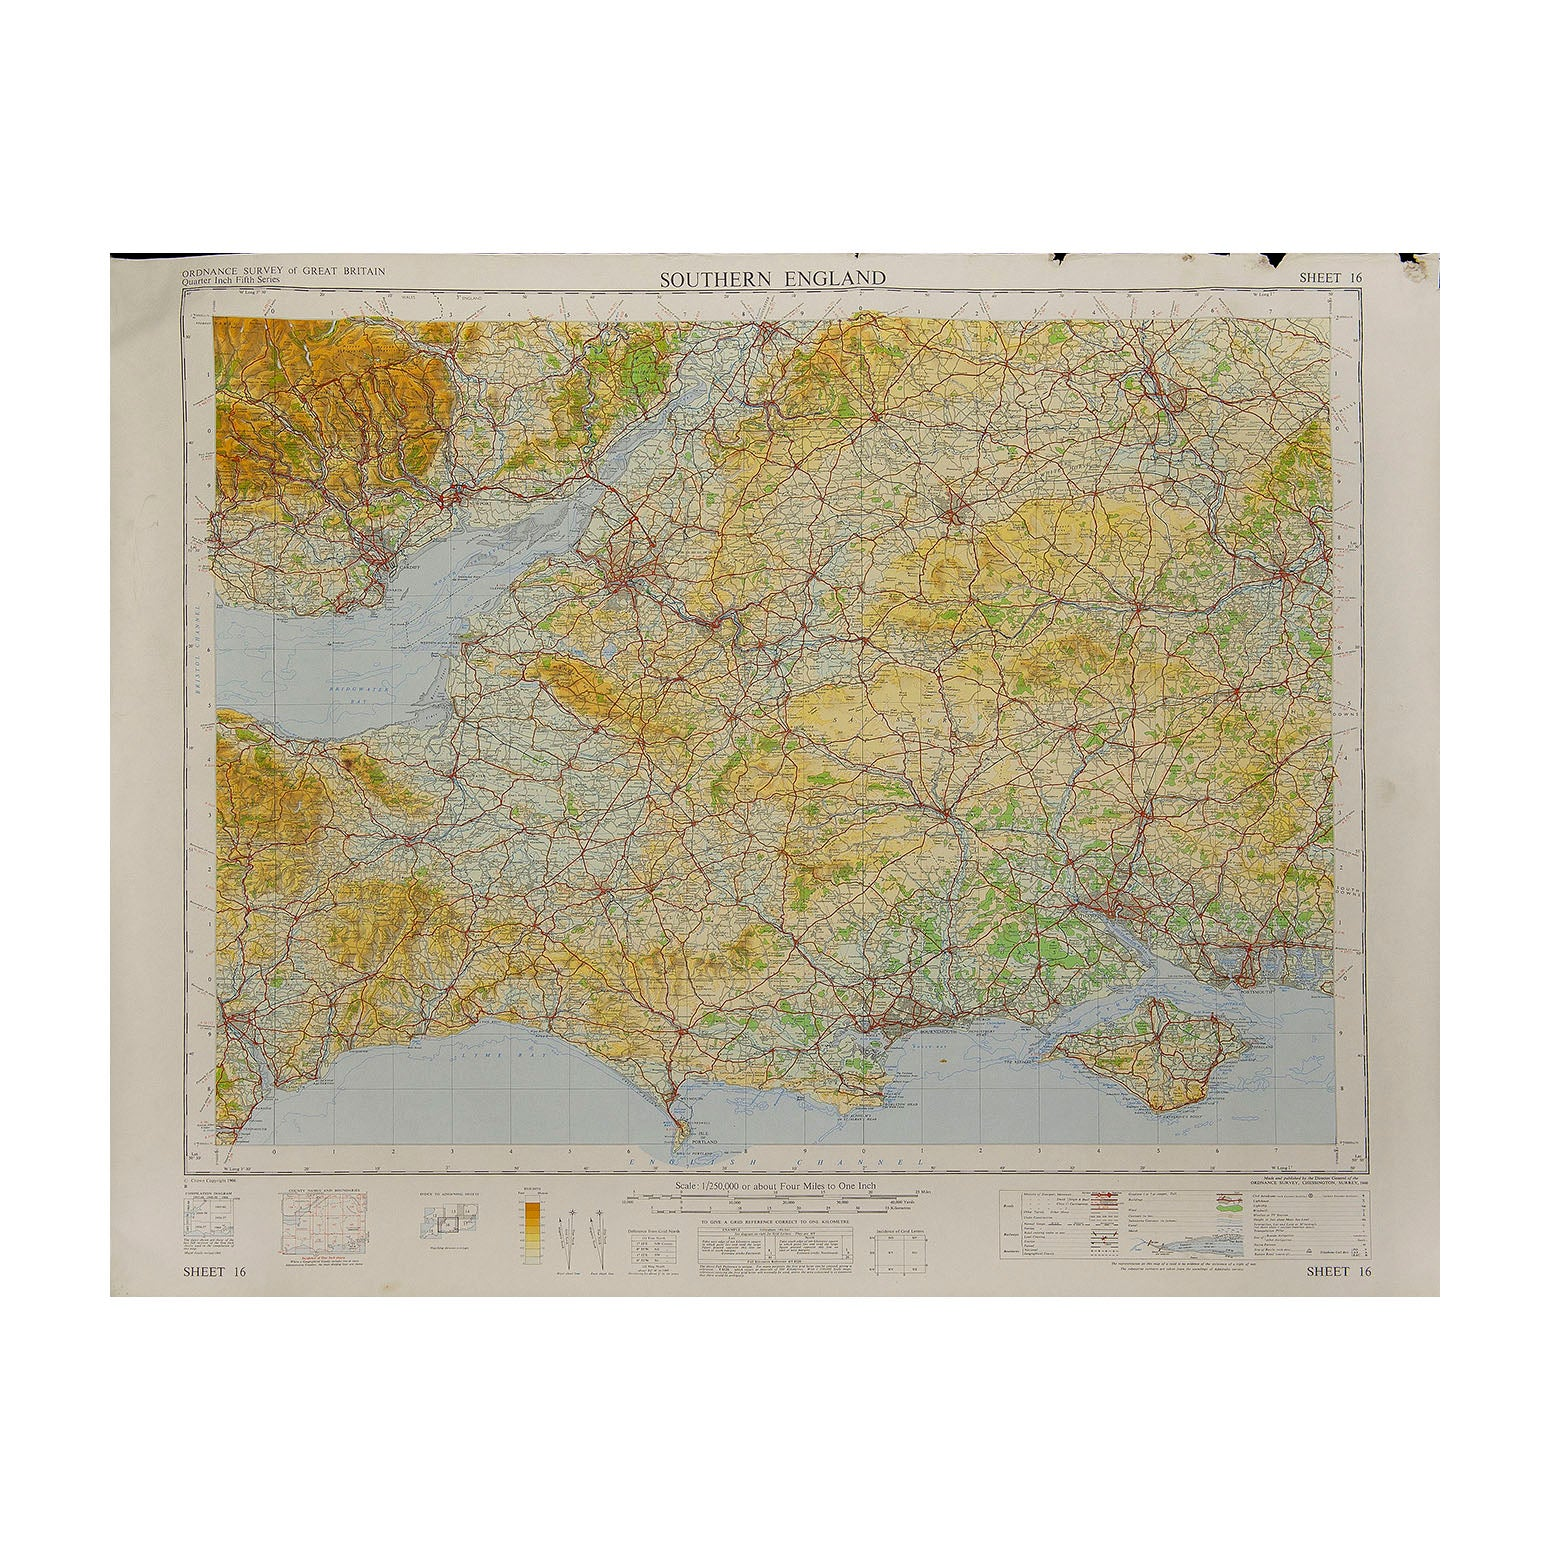 Southern England Ordnance Survey map